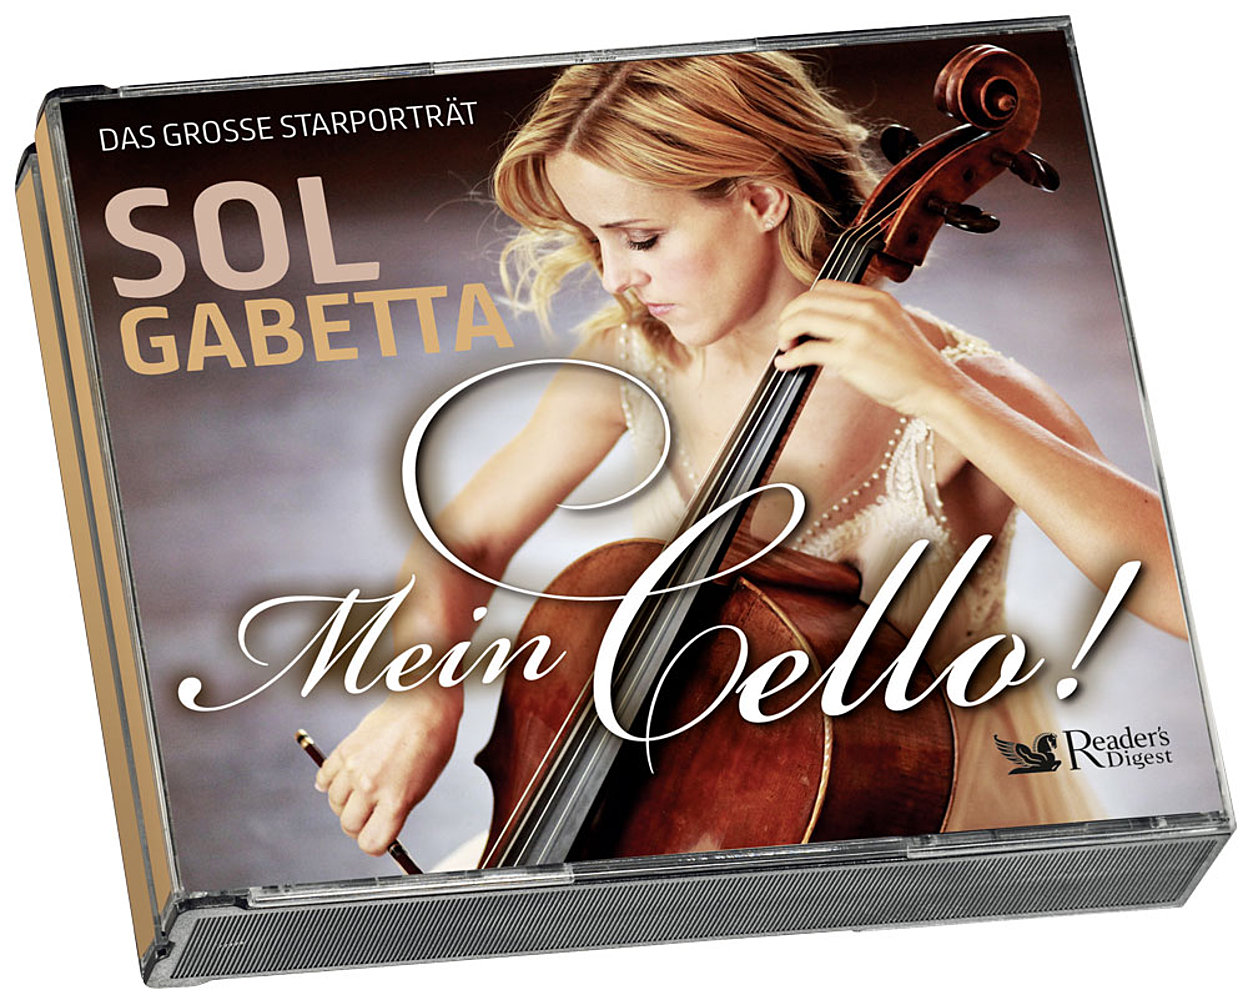 Sol Gabetta – Mein Cello!